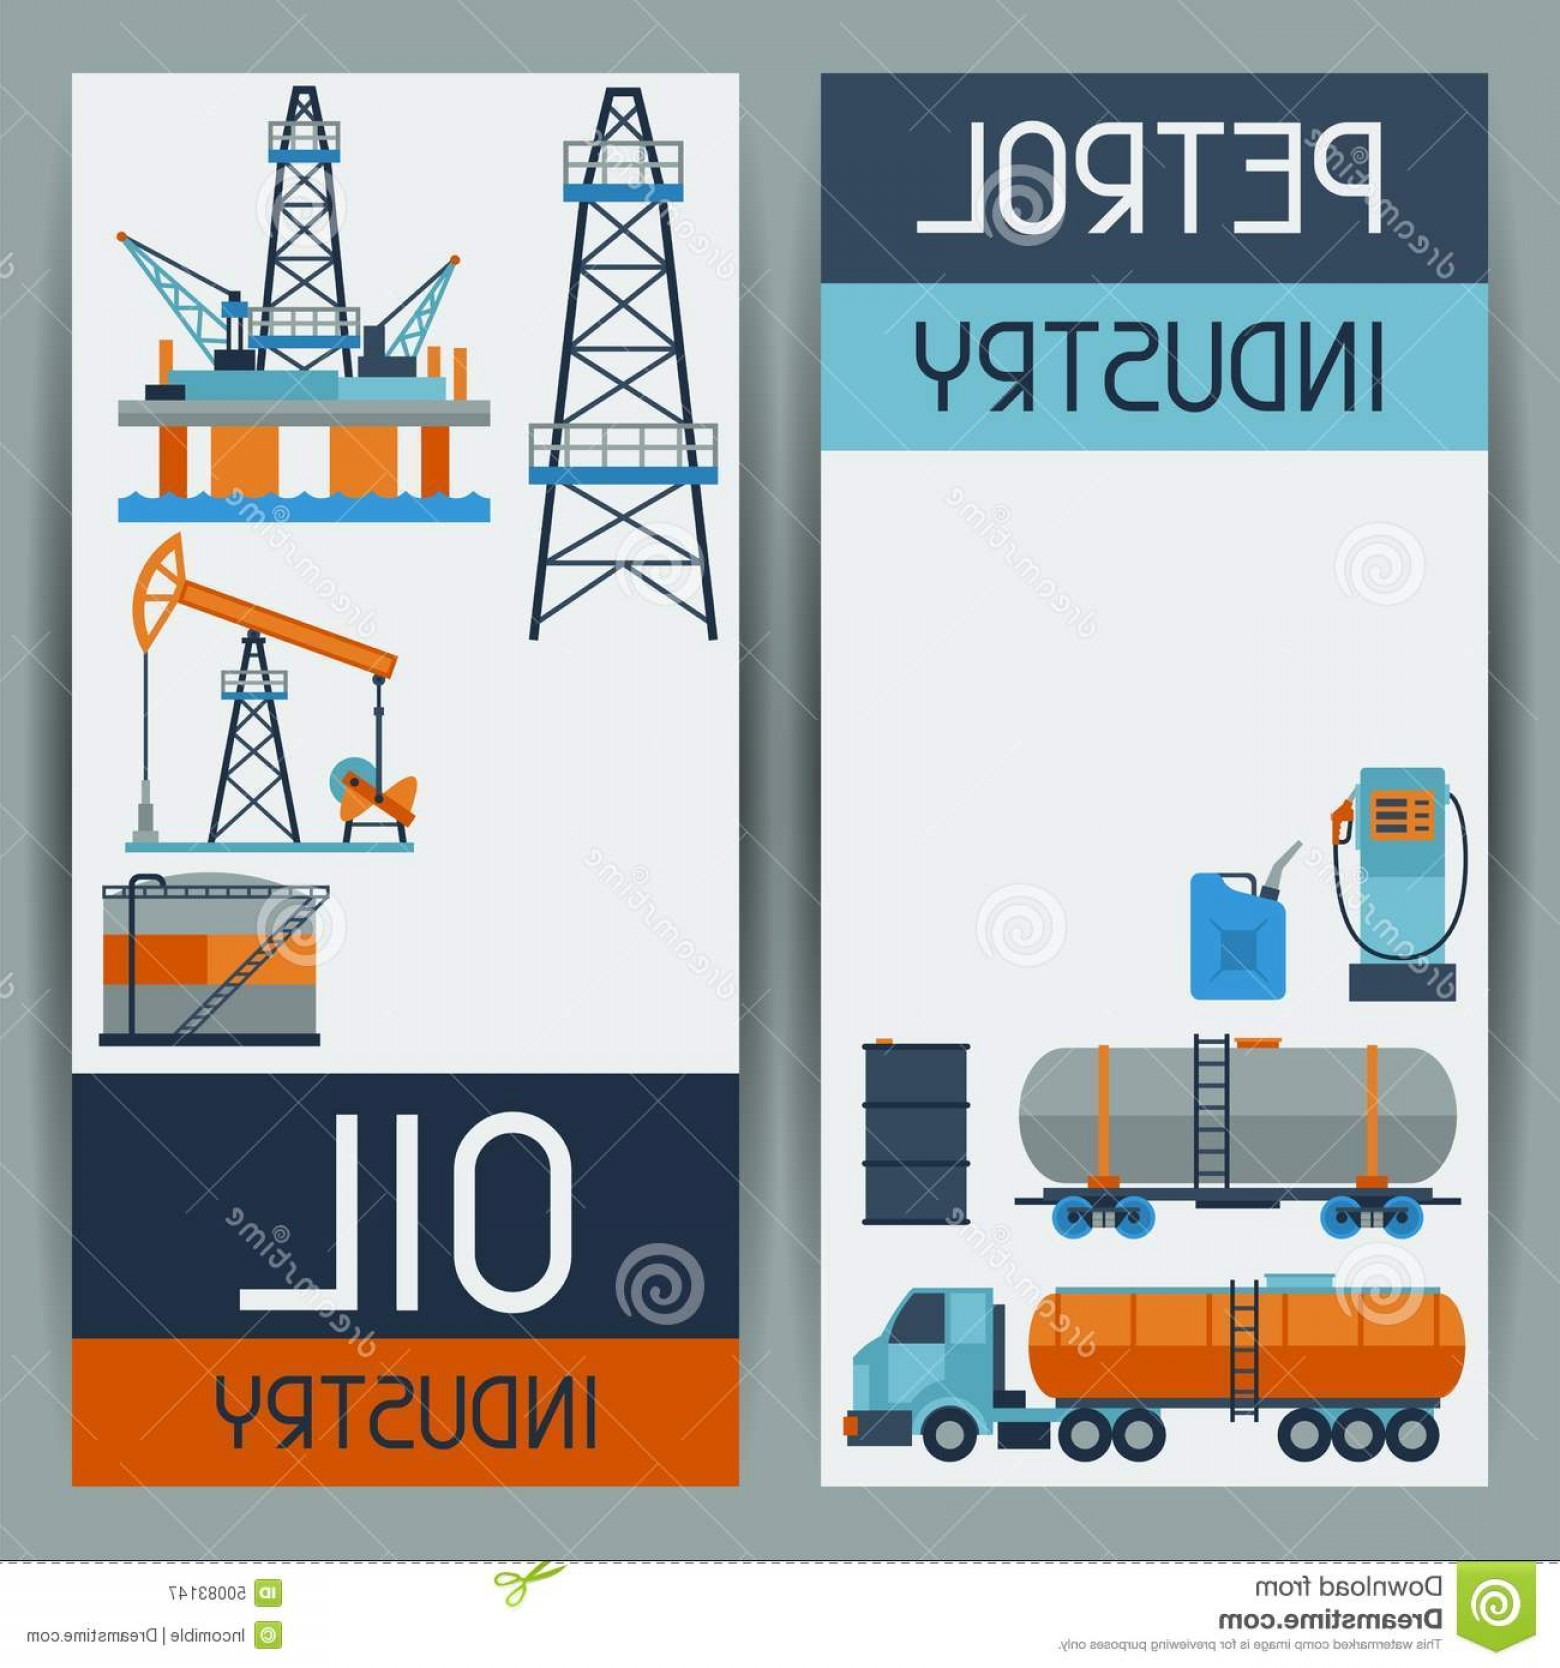 Oilfield Vector Crosses: Stock Illustration Industrial Banners Design Oil Petrol Icons Extraction Refinery Facilities Image